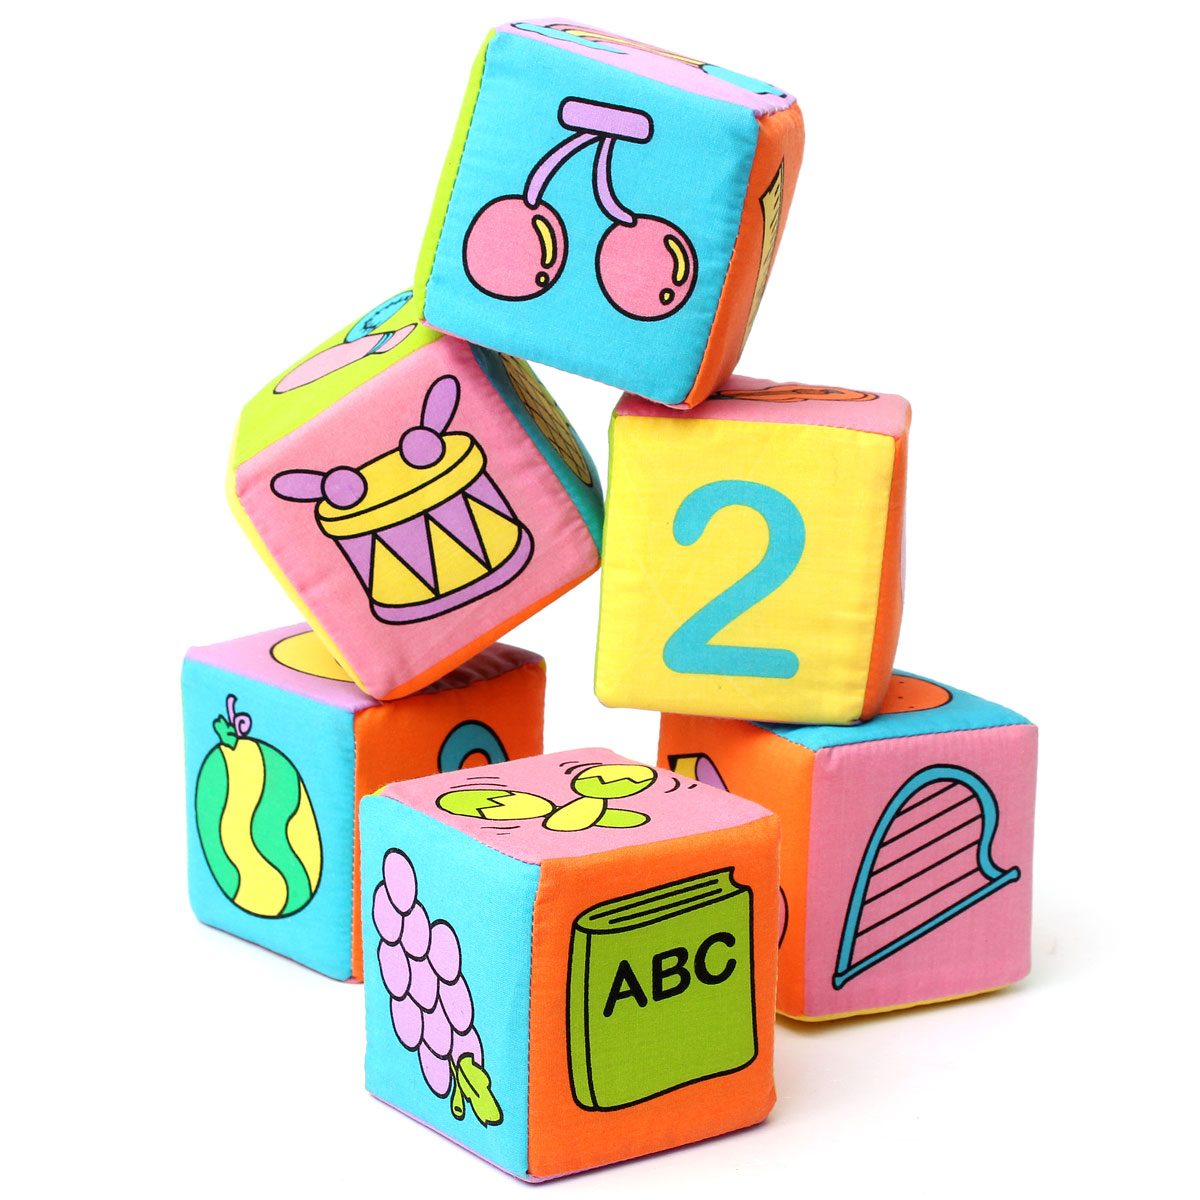 Image result for toys soft educational